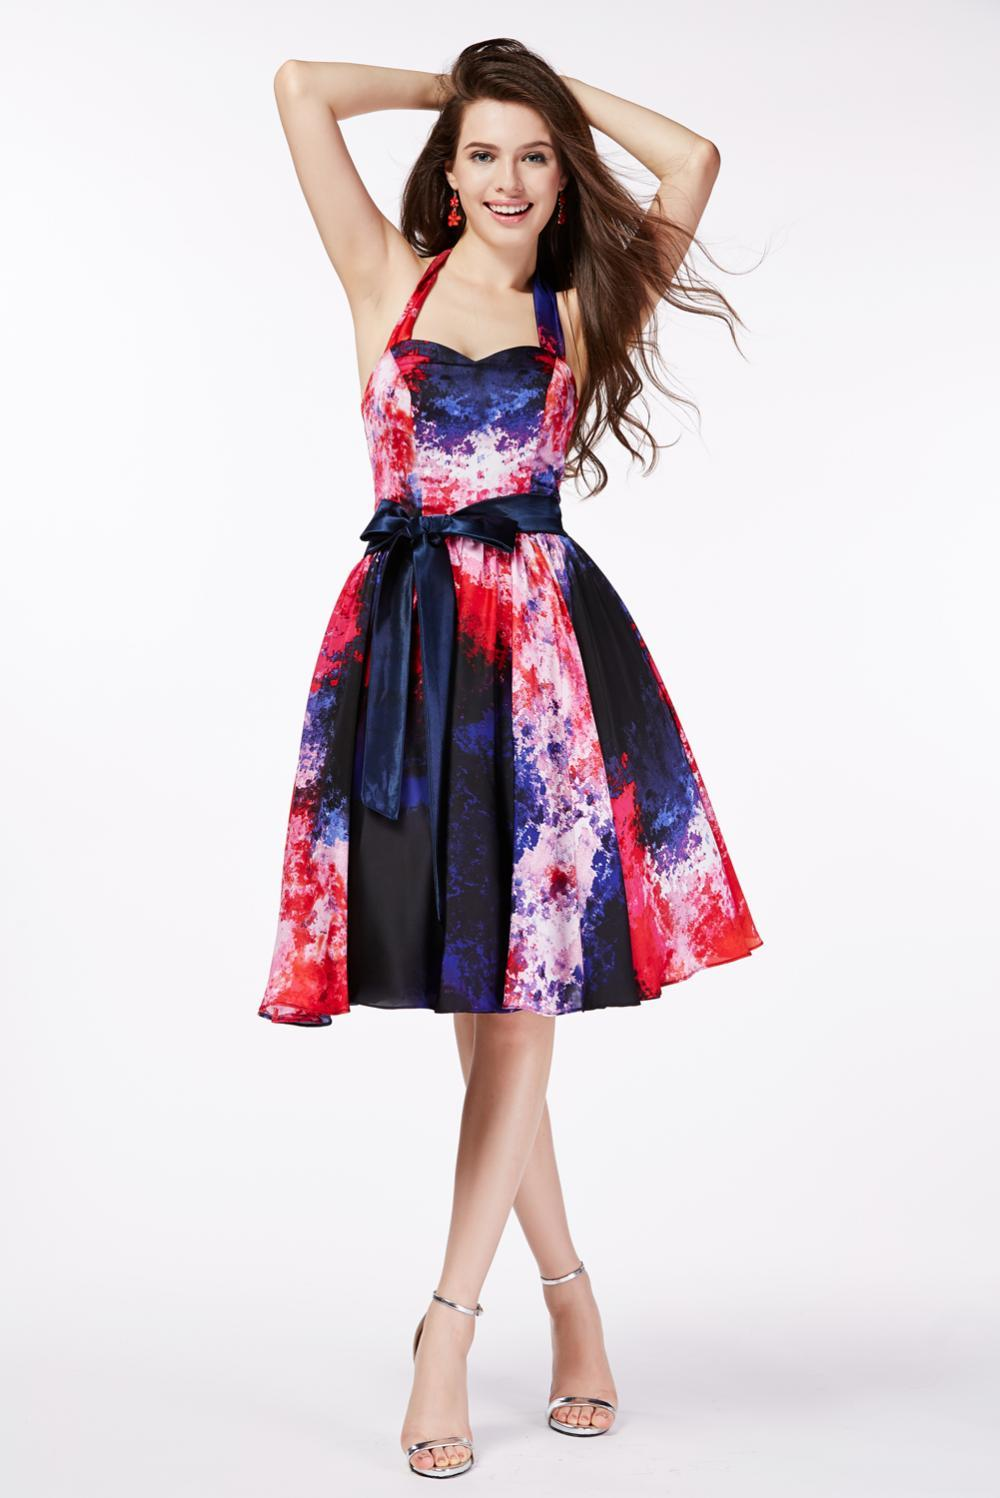 A-Line/Princess Halter Knee Length Chiffon Cocktail Dress with Printed